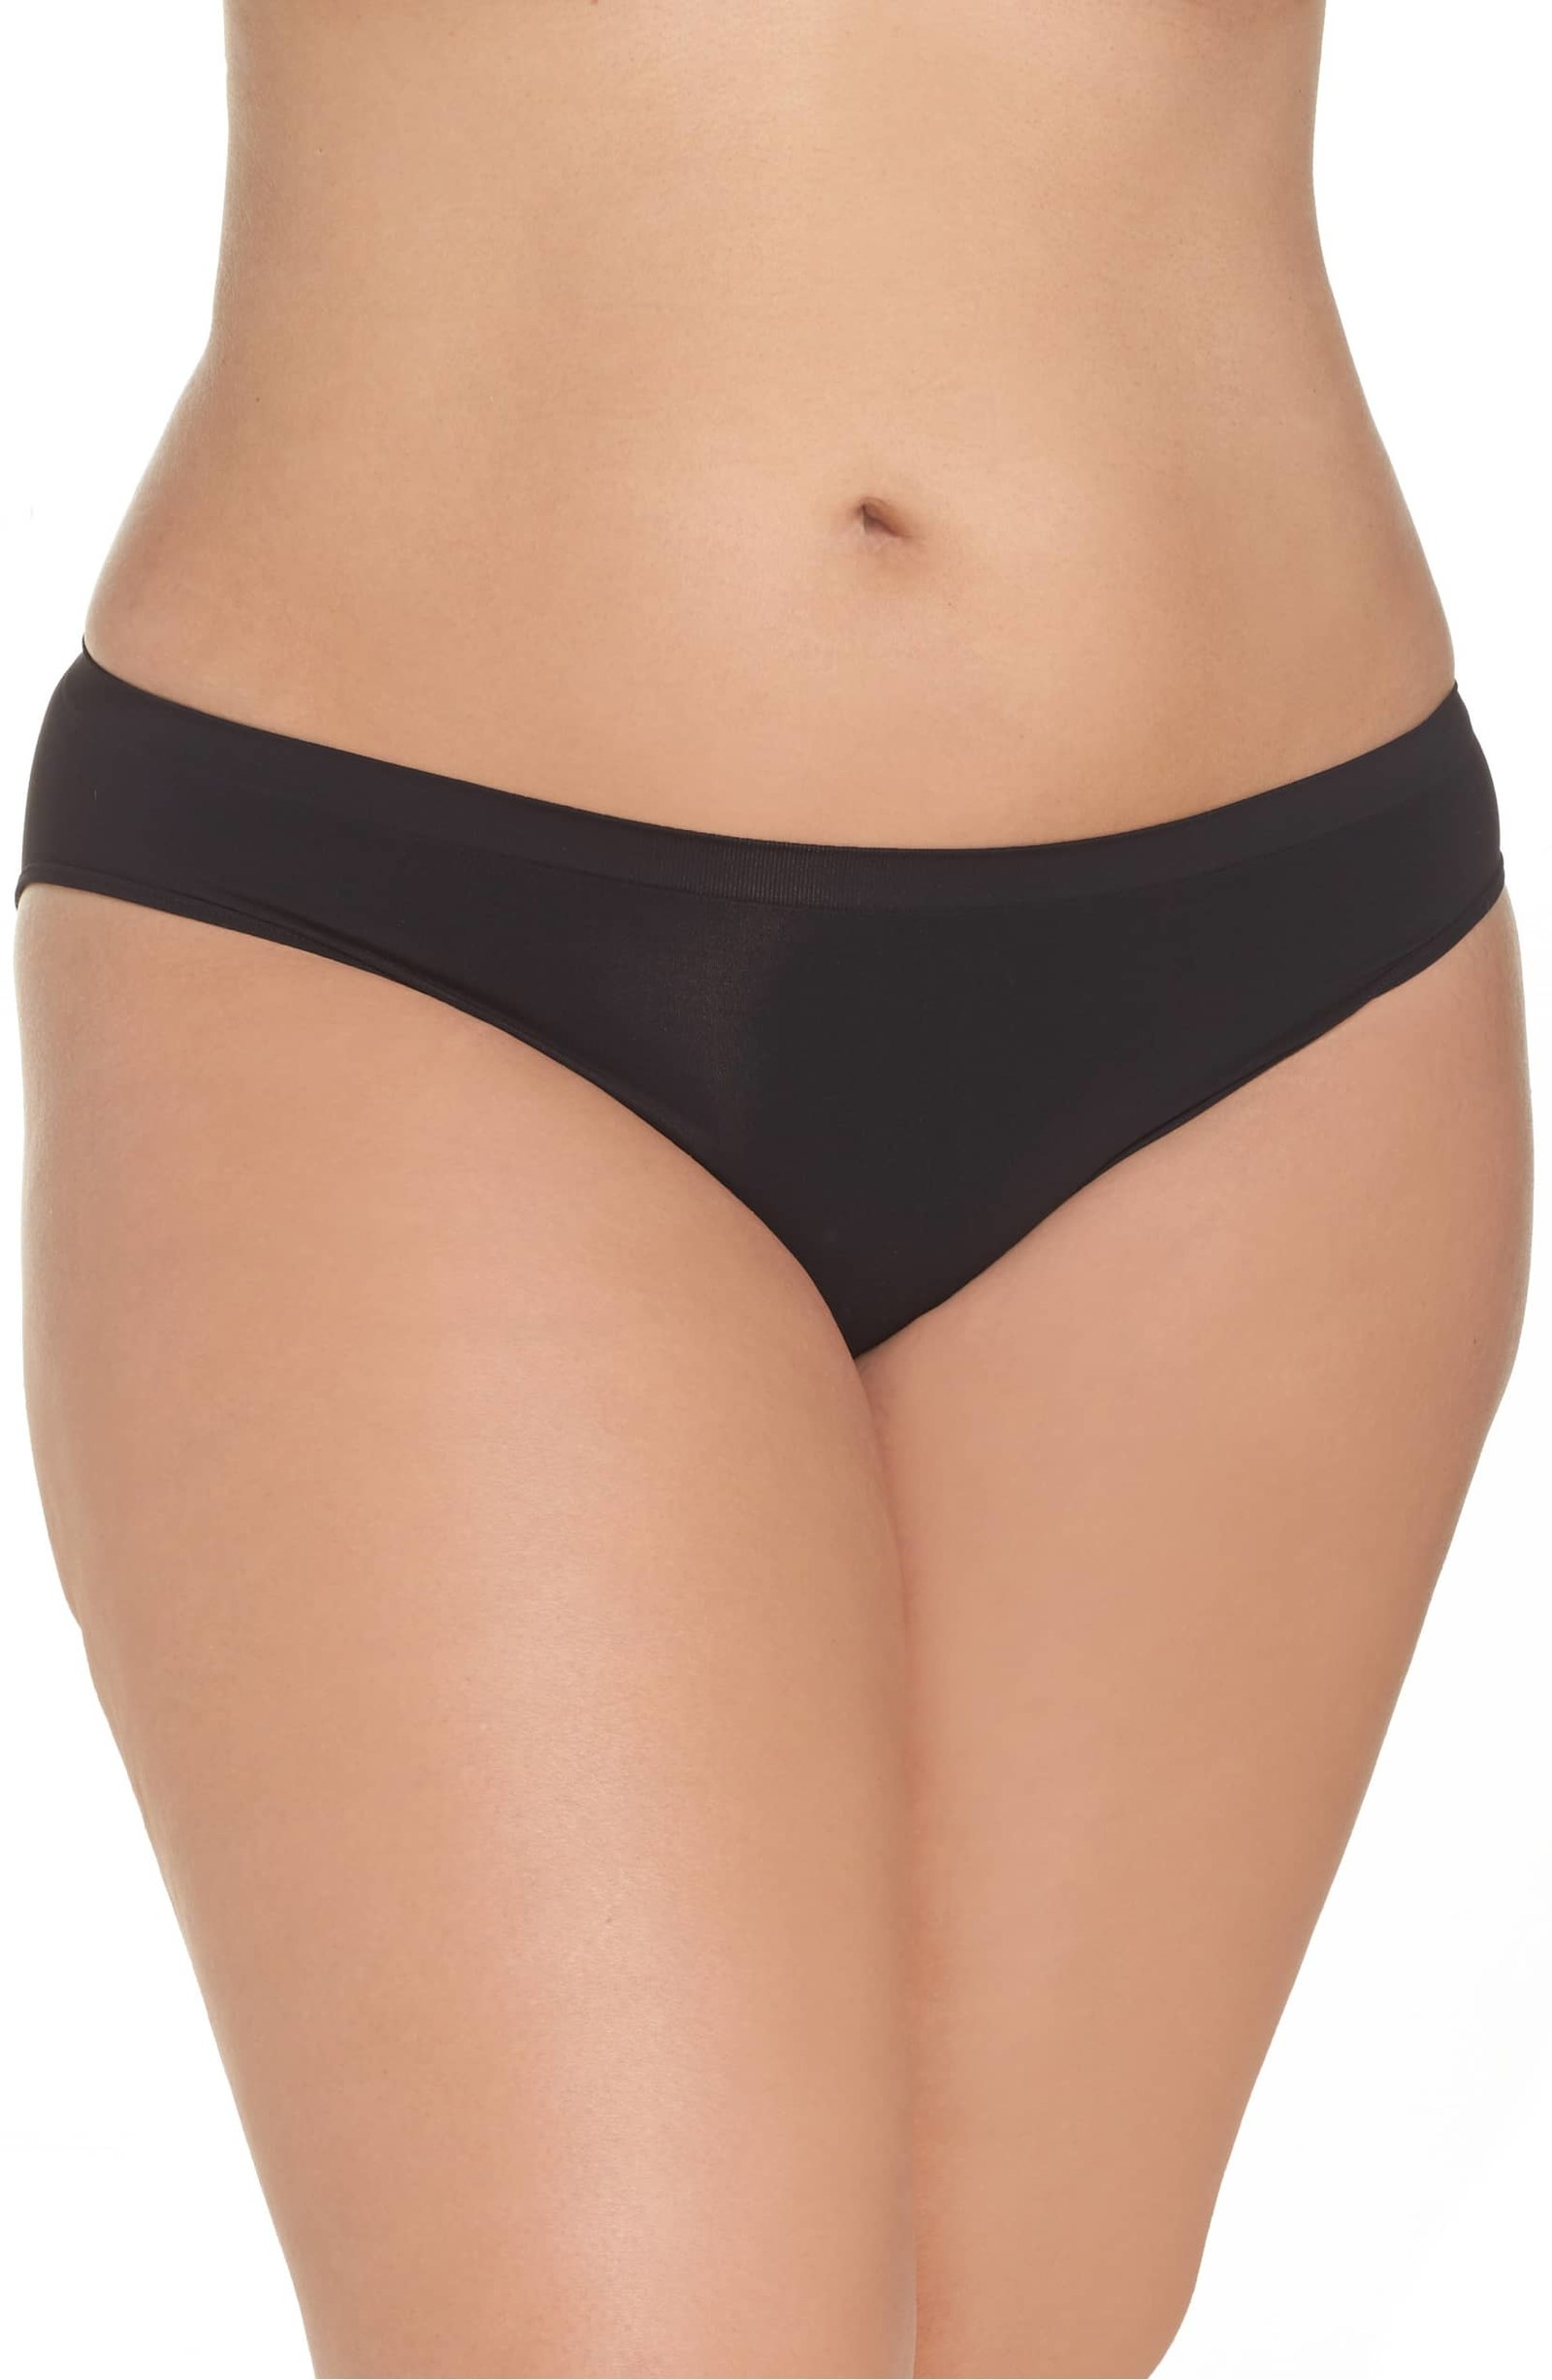 8597724be38c Seamless panties currently on sale for 50%, so what are you still doing  here? You should probably go snag these while they're still available.